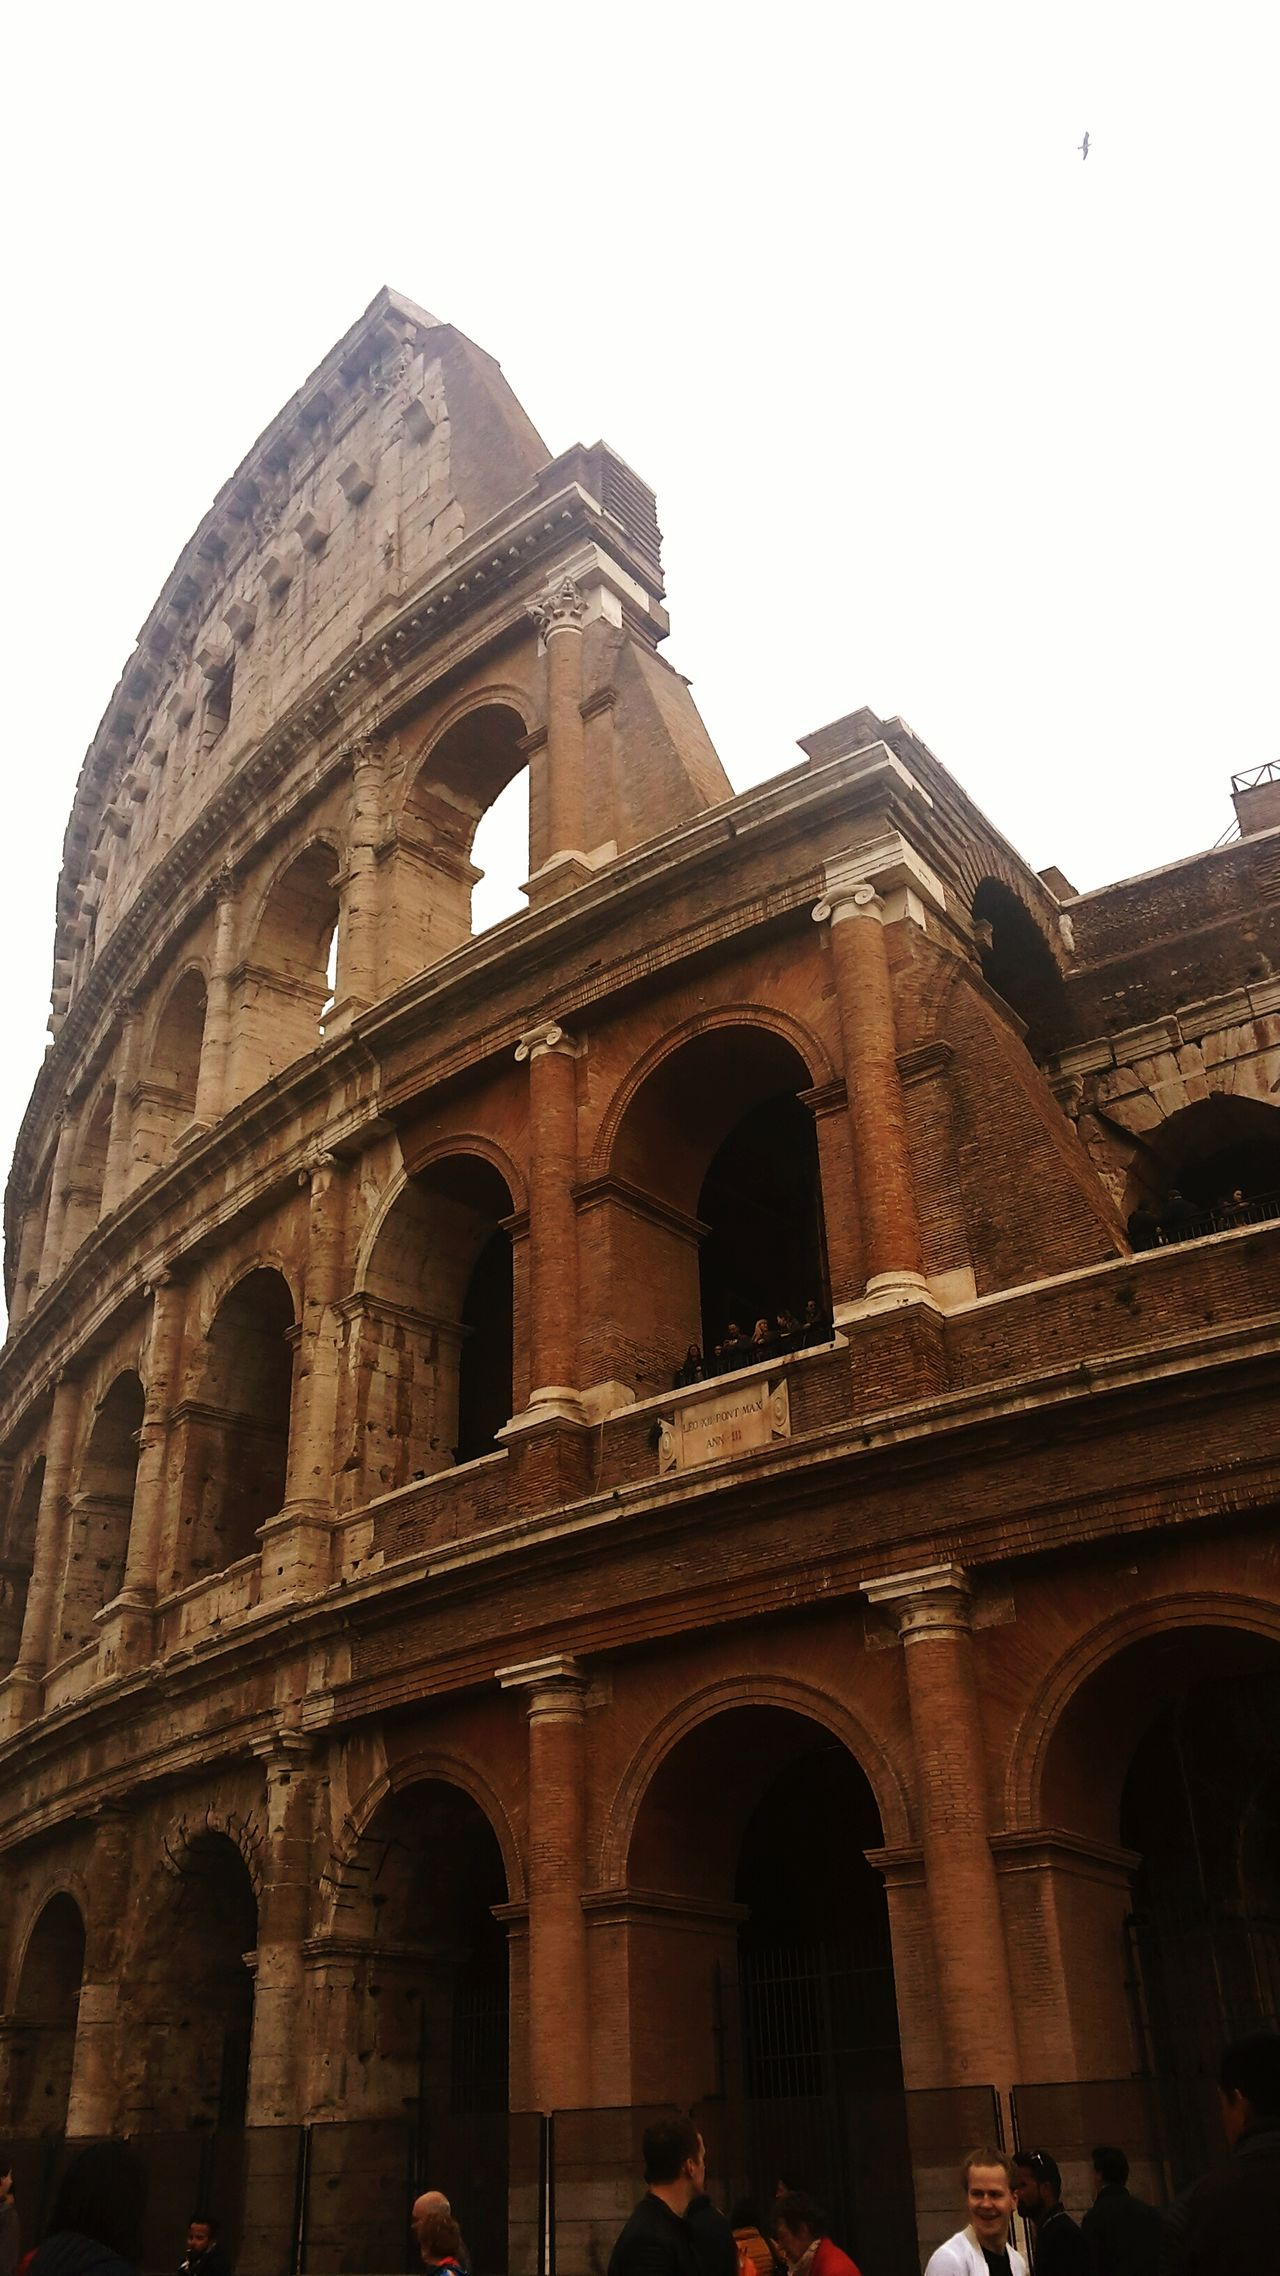 Colosseo - Roma Low Angle View Travel History City Travel Destinations Sky Architecture Built Structure Tourism Outdoors No People Day Roma Colosseo Weekend Love Of Art Art Roman Architecture Roman Empire Romantic Place History Architecture Saturday Turist Beautiful Place Nature